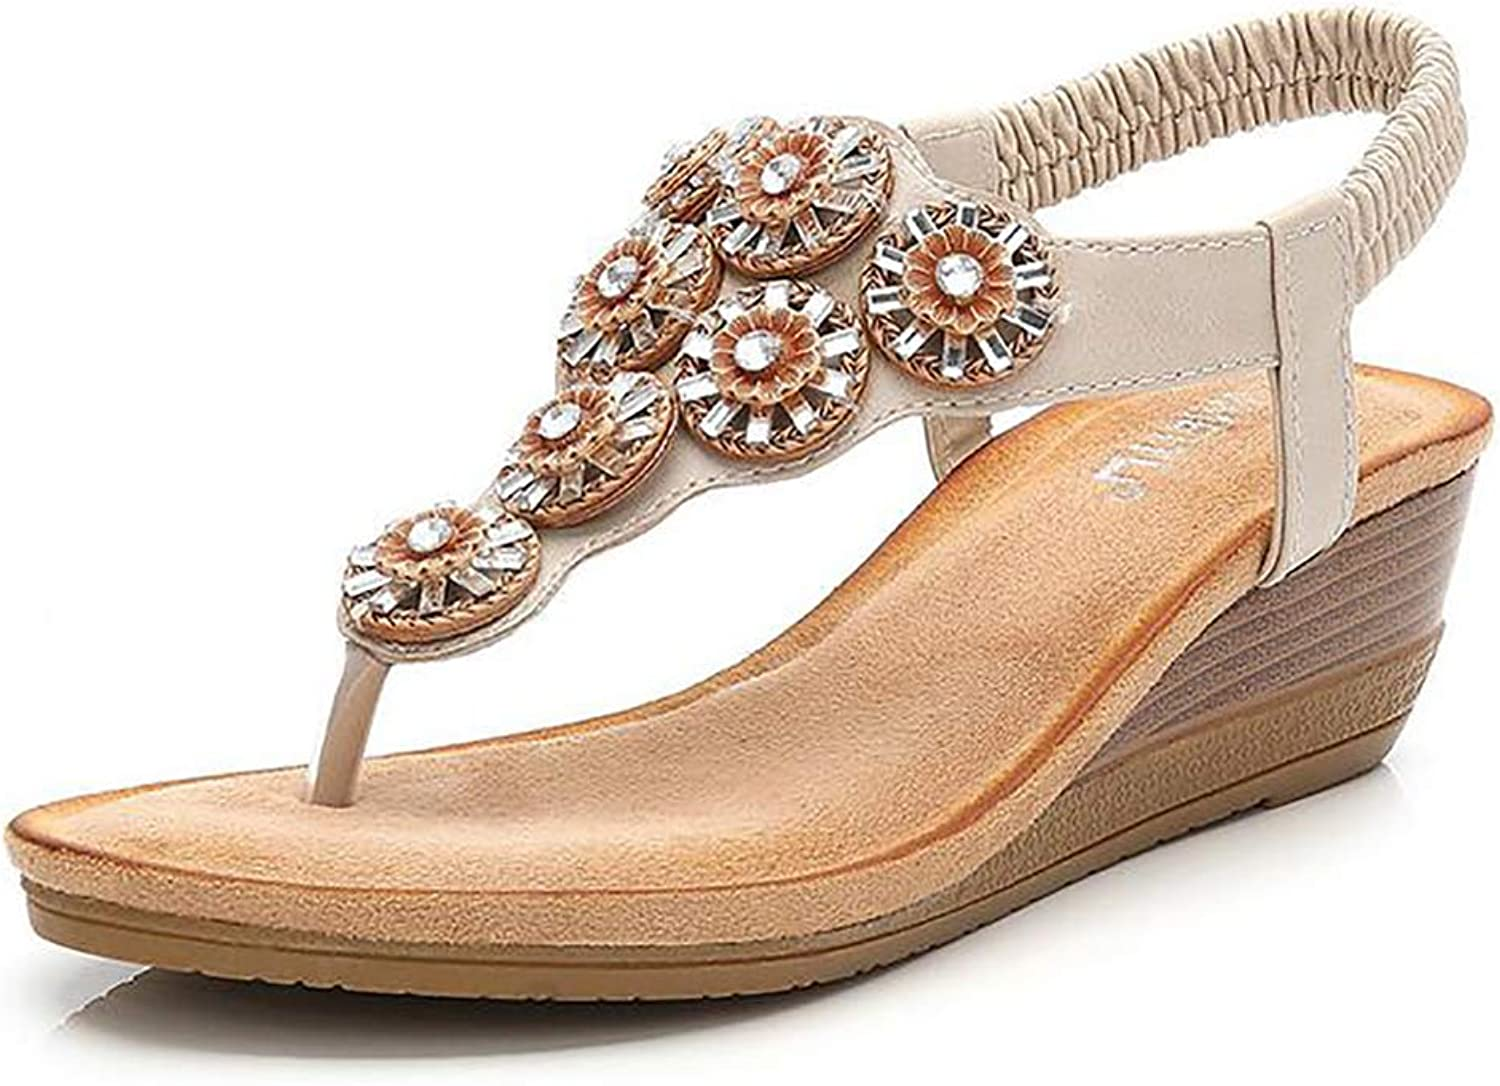 Summer Women Wedge Sandals Bohemia Casual Comfortable Beach Flip-Flops shoes Flower Beaded Decoration Simple Slippers,Airport,38